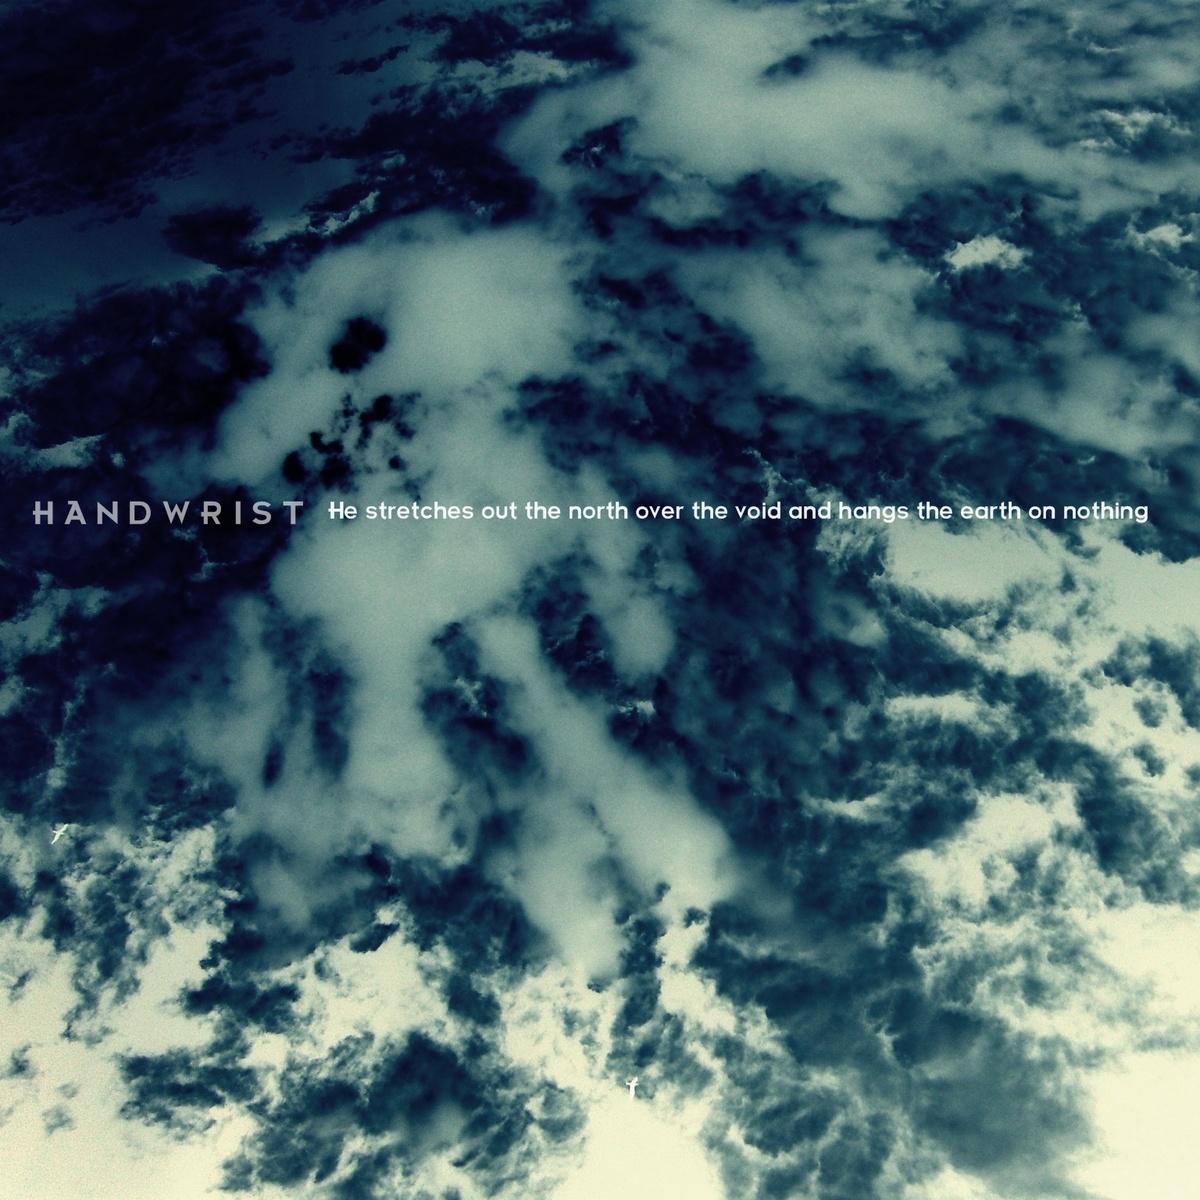 Handwrist – He stretches out the north over the void and hangs the earth on nothing